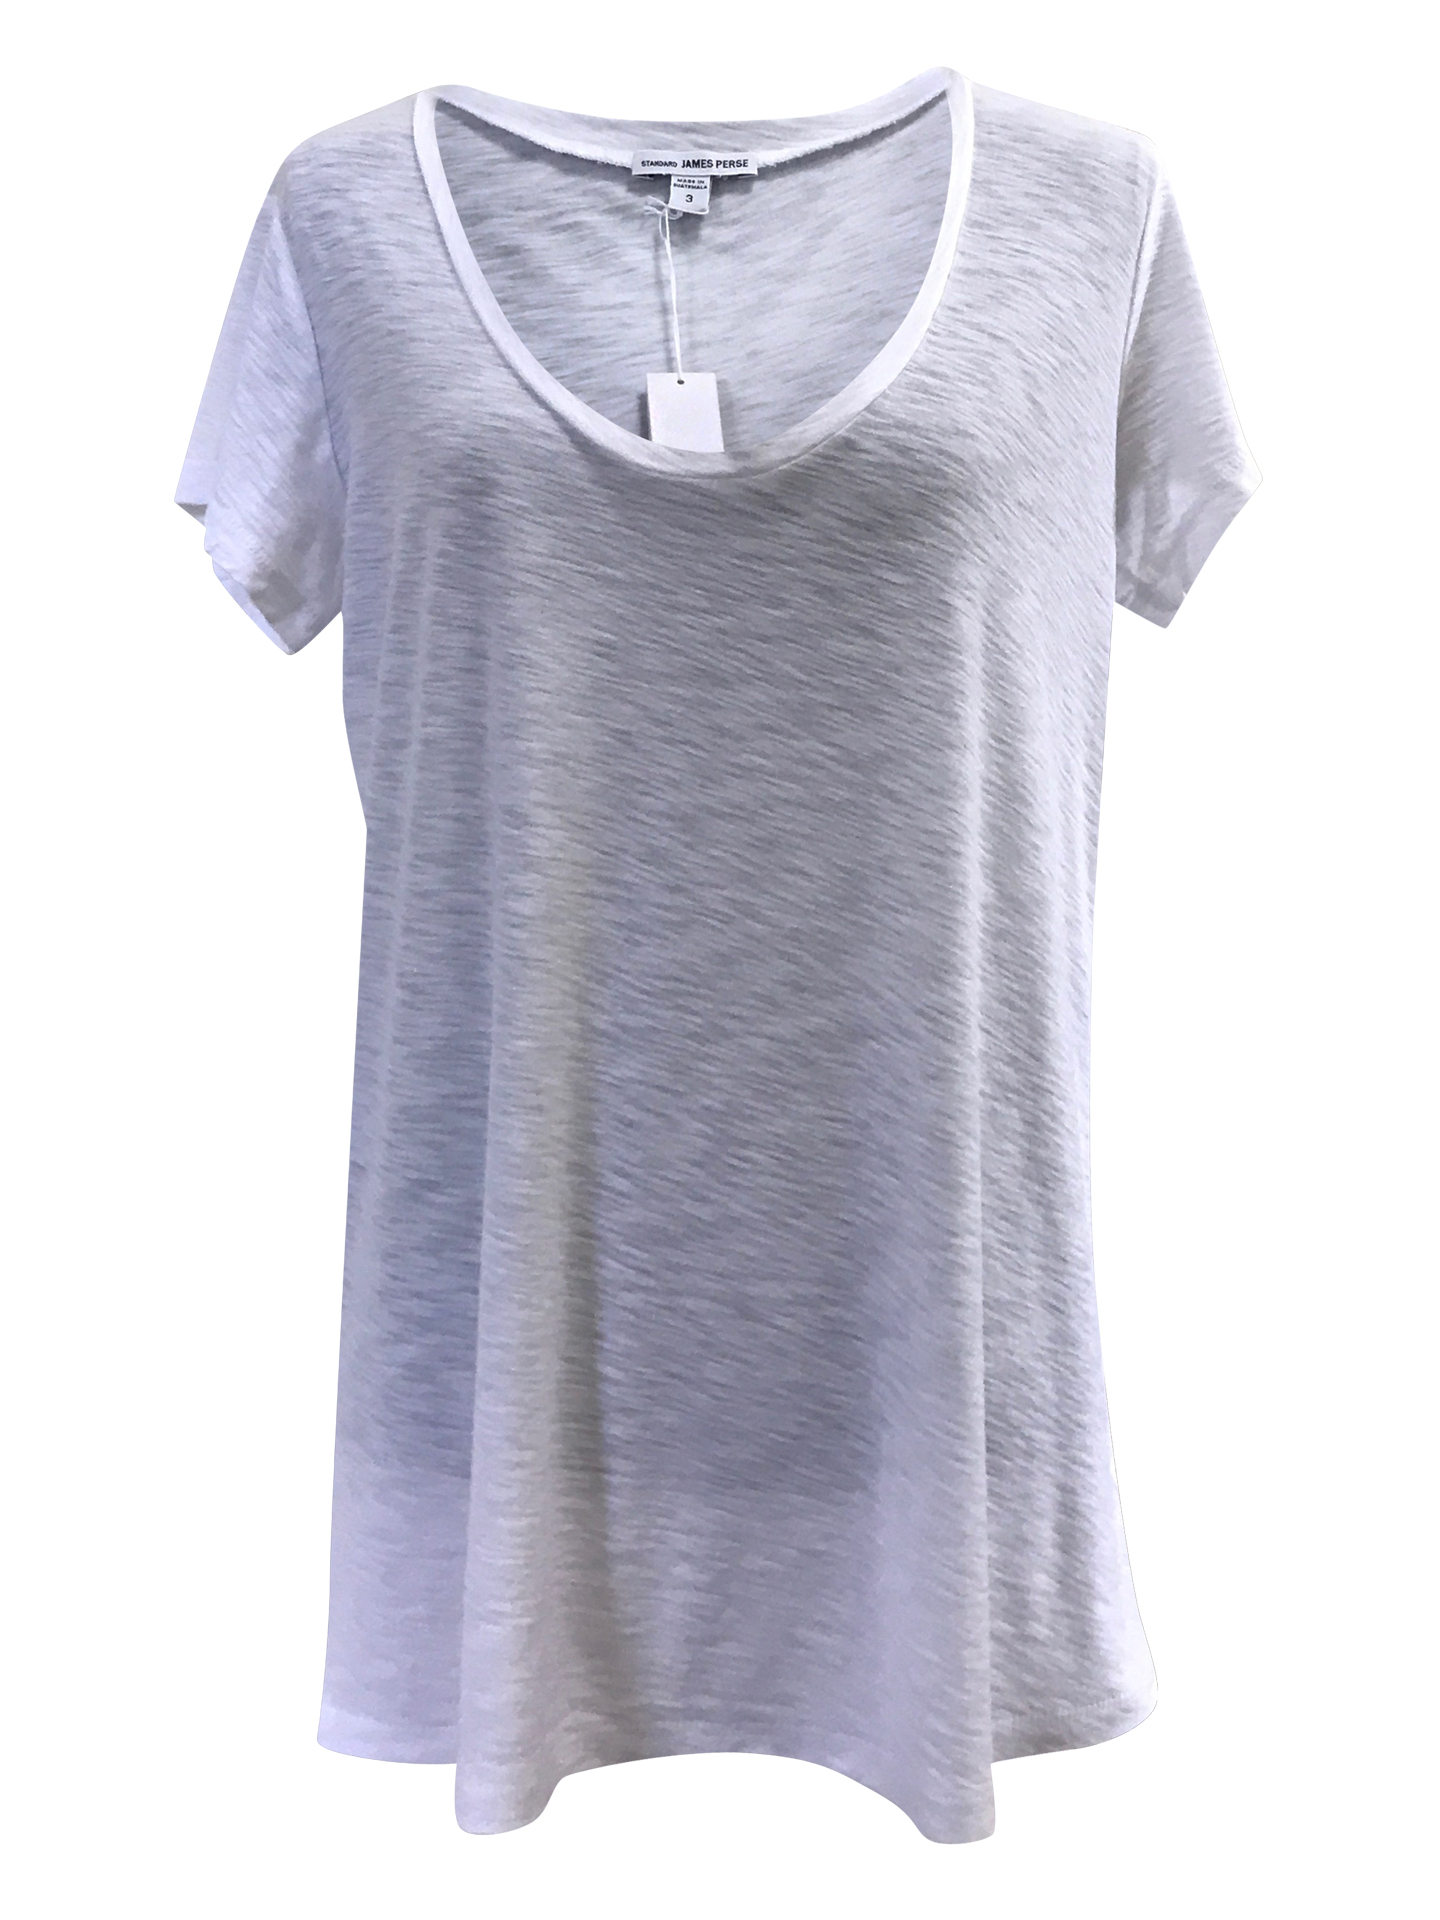 James perse t shirt chance two clothing for James perse t shirts sale